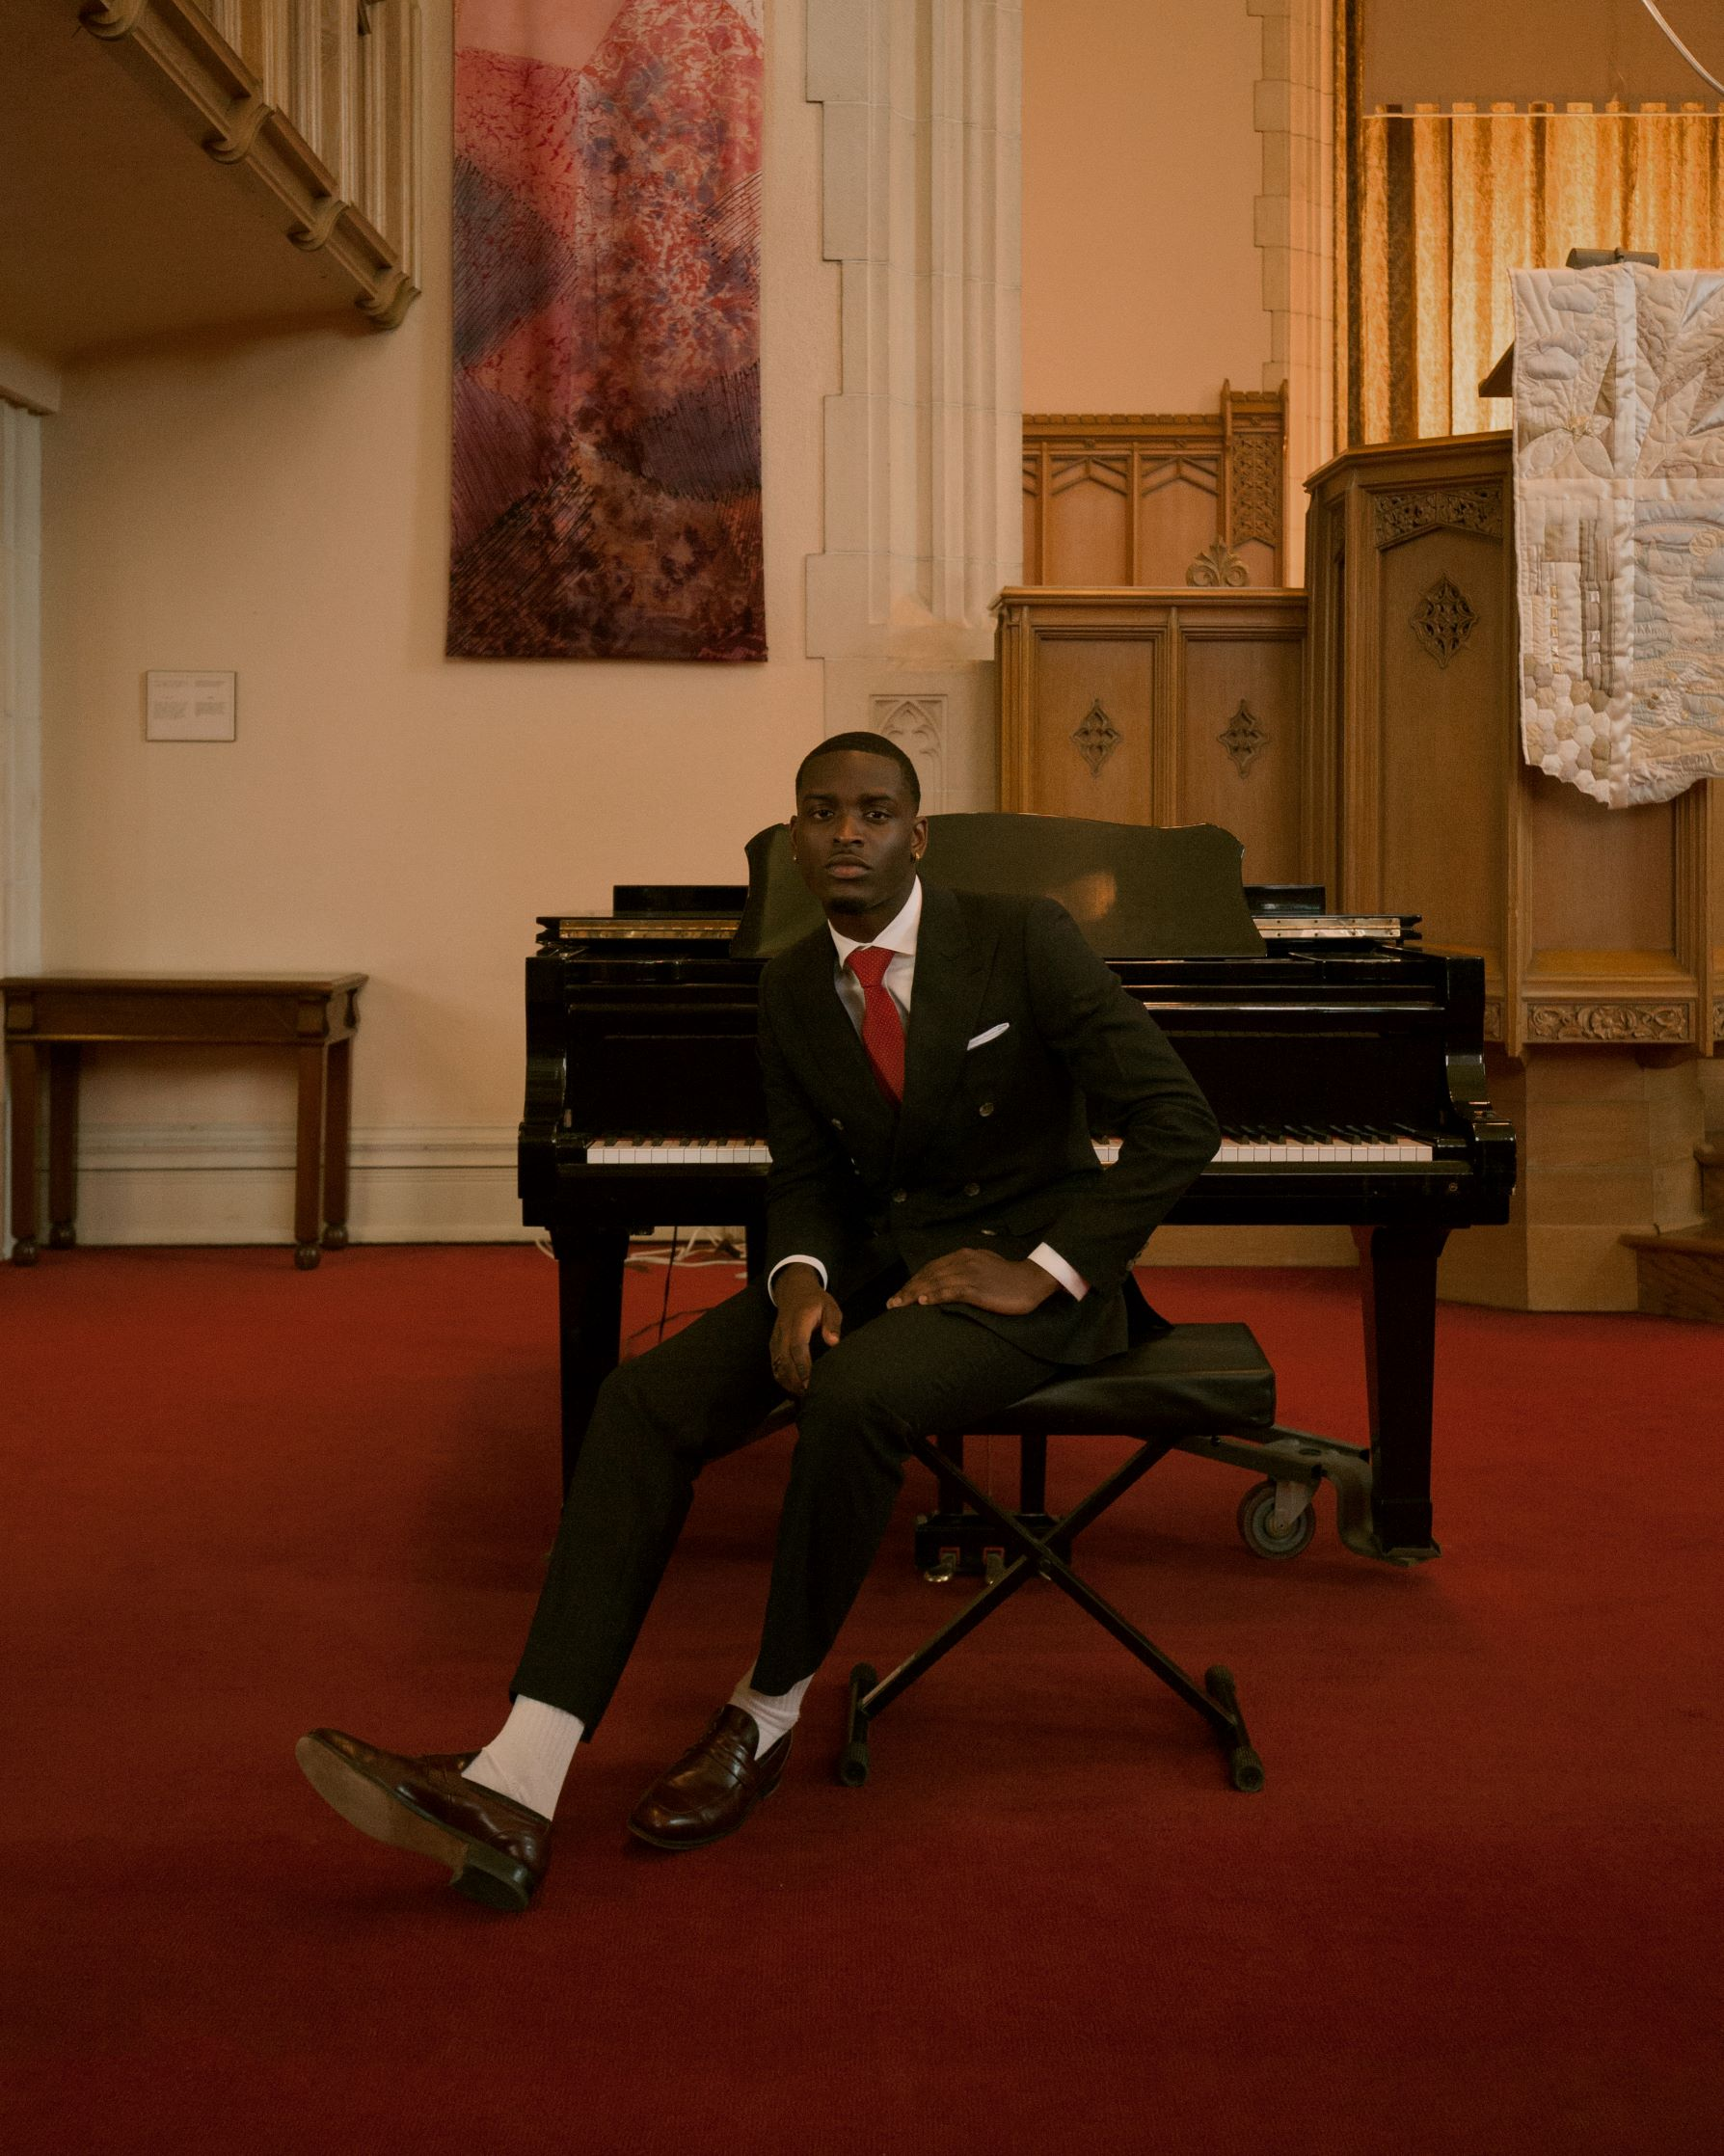 Josef Adamu in a Black suit in front of a piano in a church